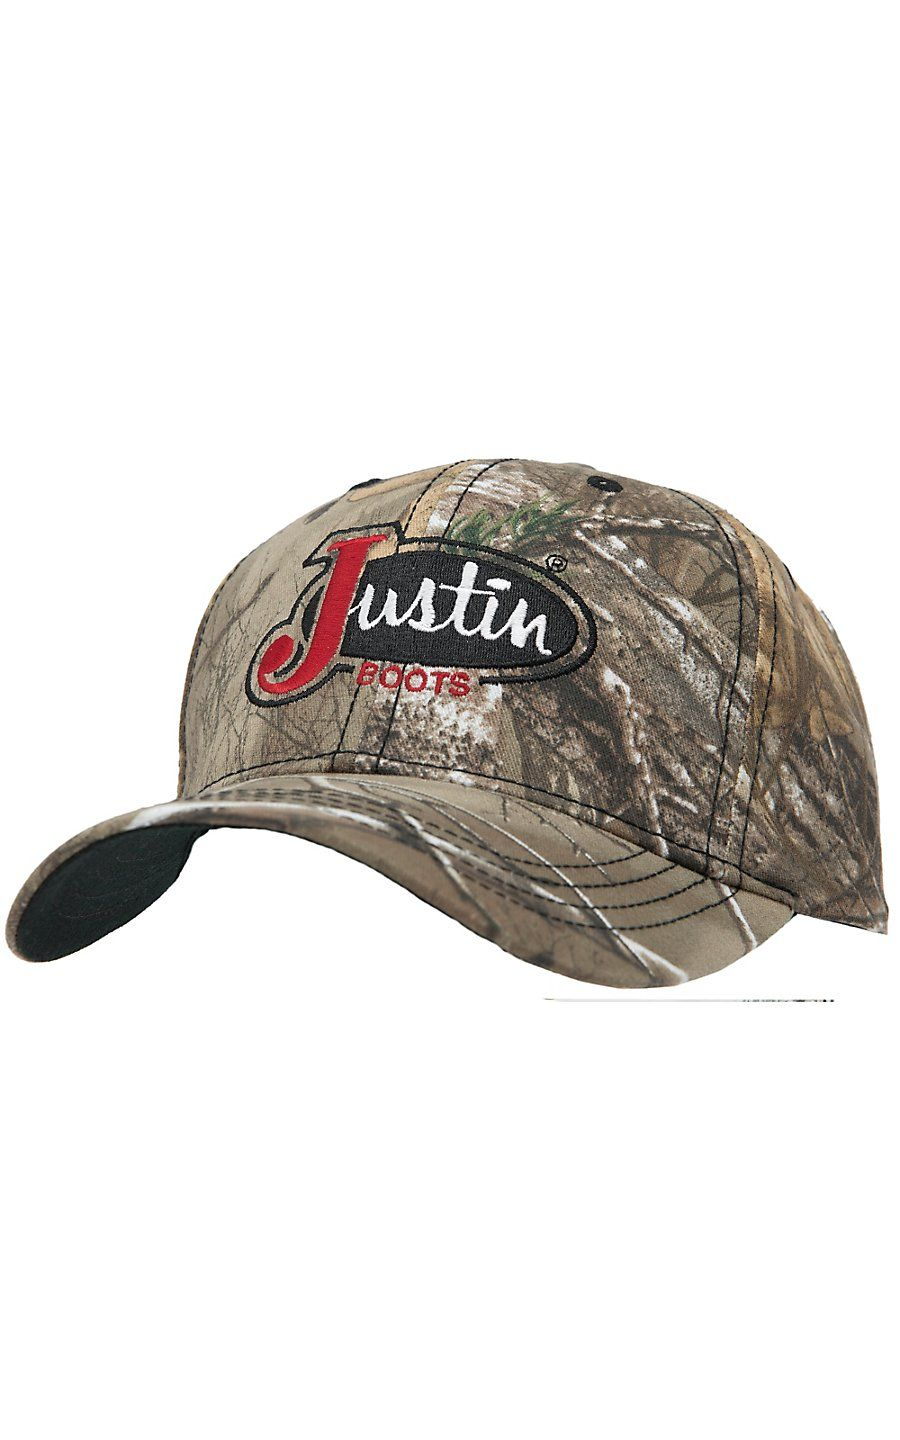 Justin Boots® Realtree Camo with Embroidered Logo Cap a884cca7feae